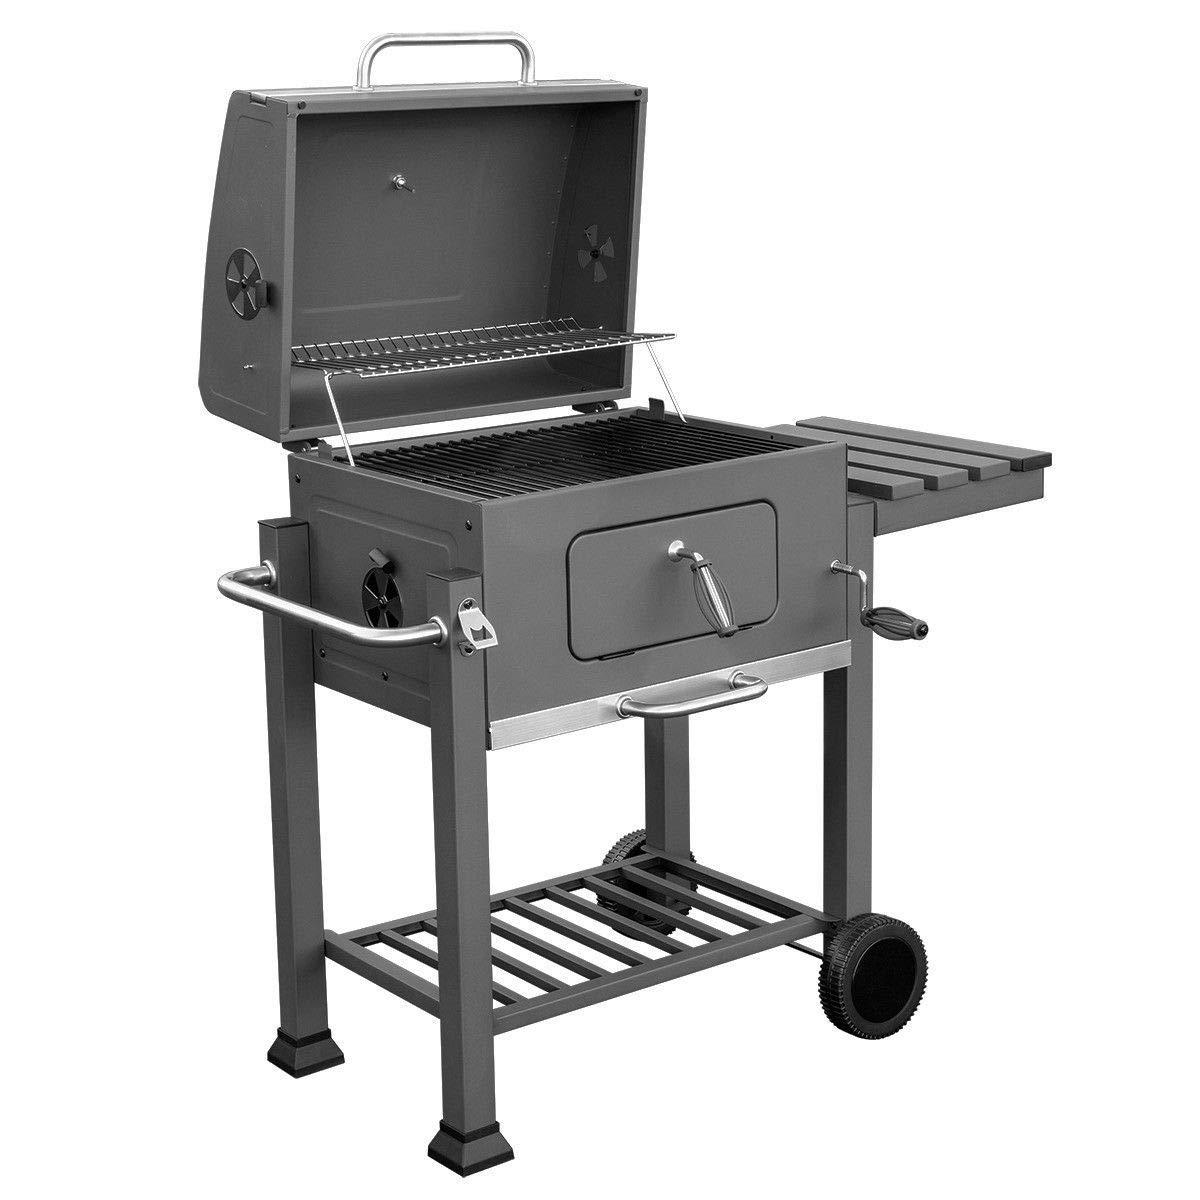 onestops8 Standing Outdoor Backyard Premium Barbecue Charcoal BBQ Grill Side Shelve